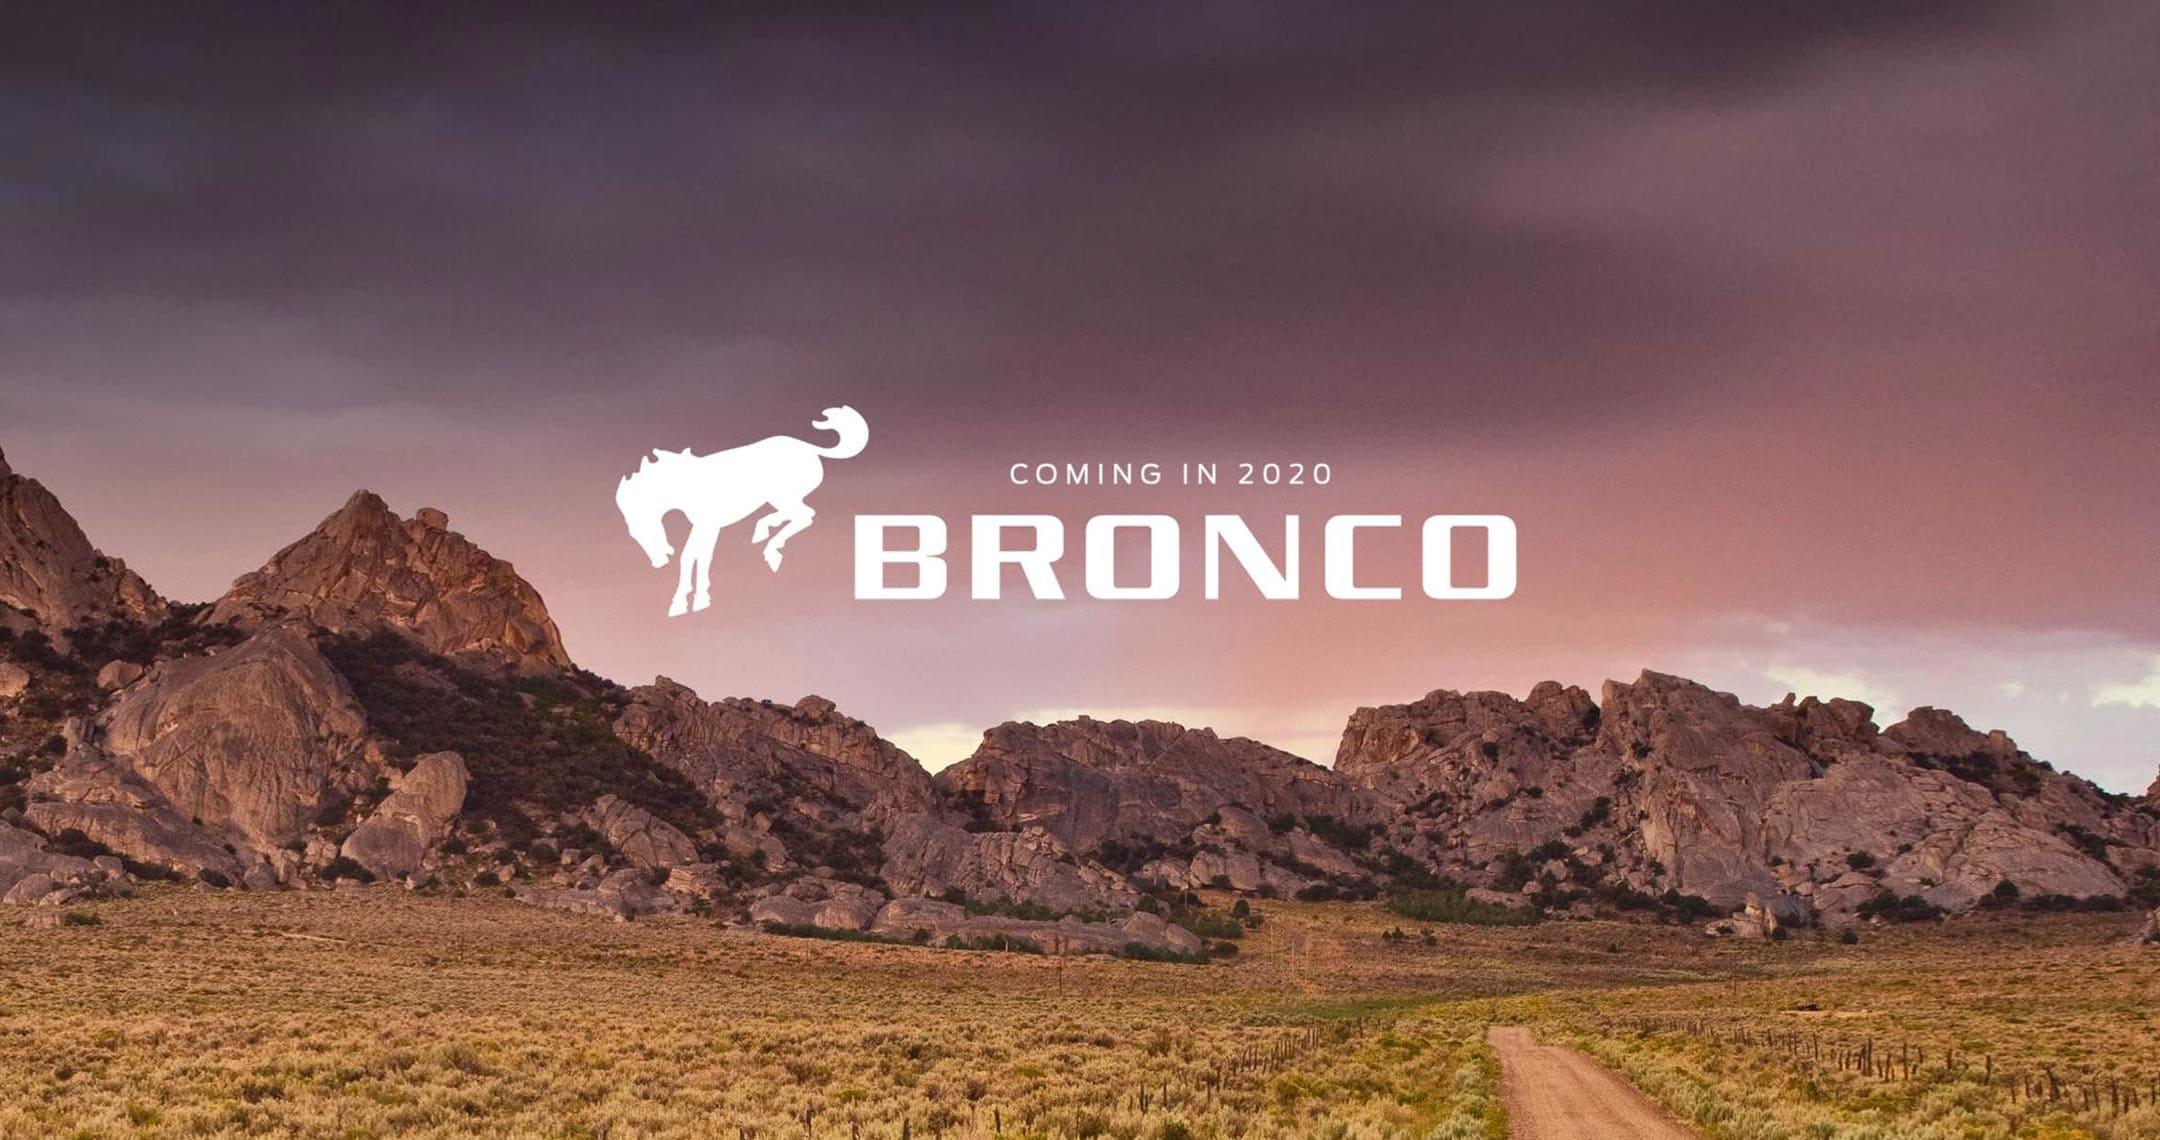 The rumors are true! The new 2020 Bronco is coming to Antelope Valley Ford